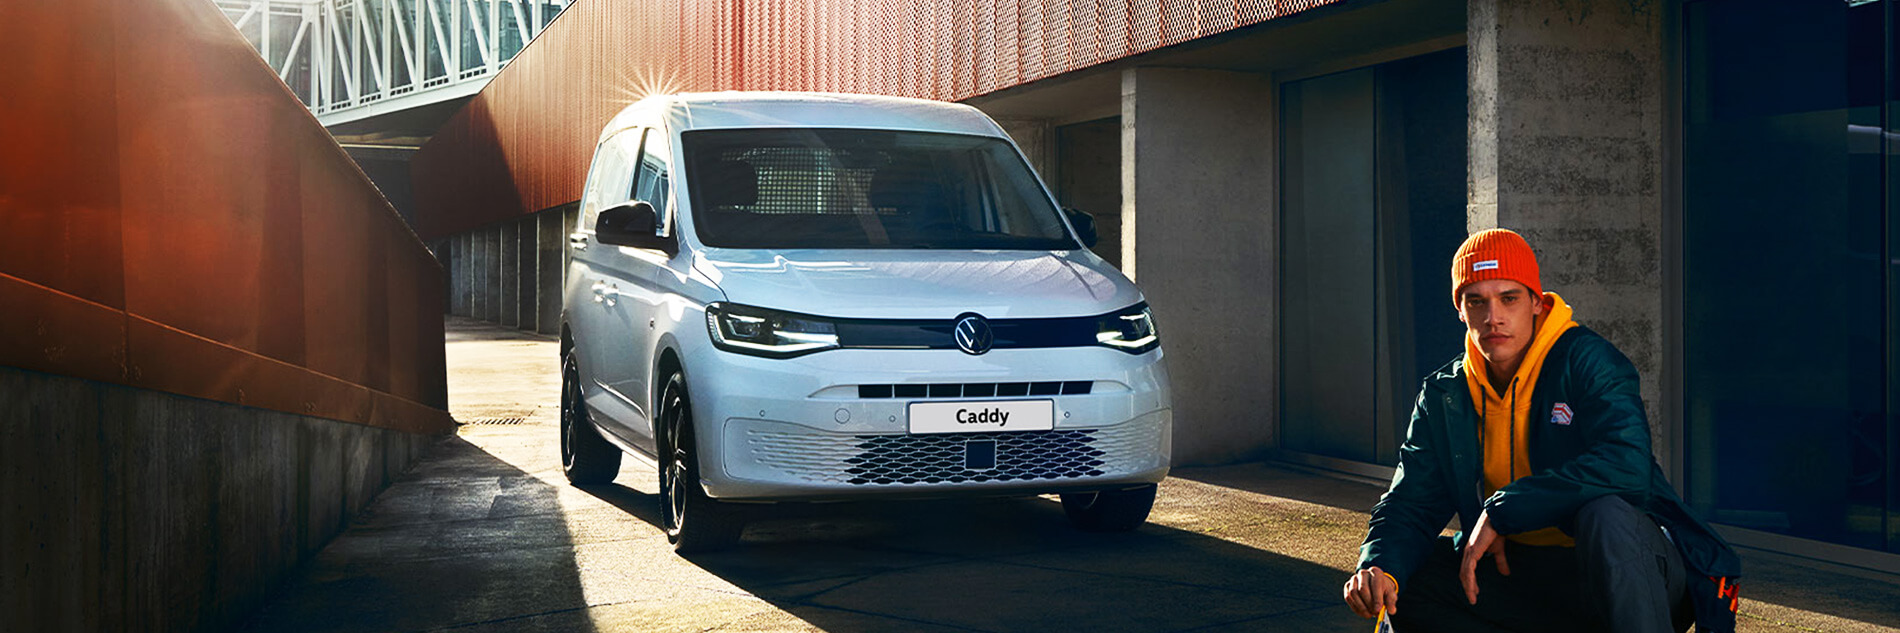 Volkswagen-Caddy-Van-header-1900x633